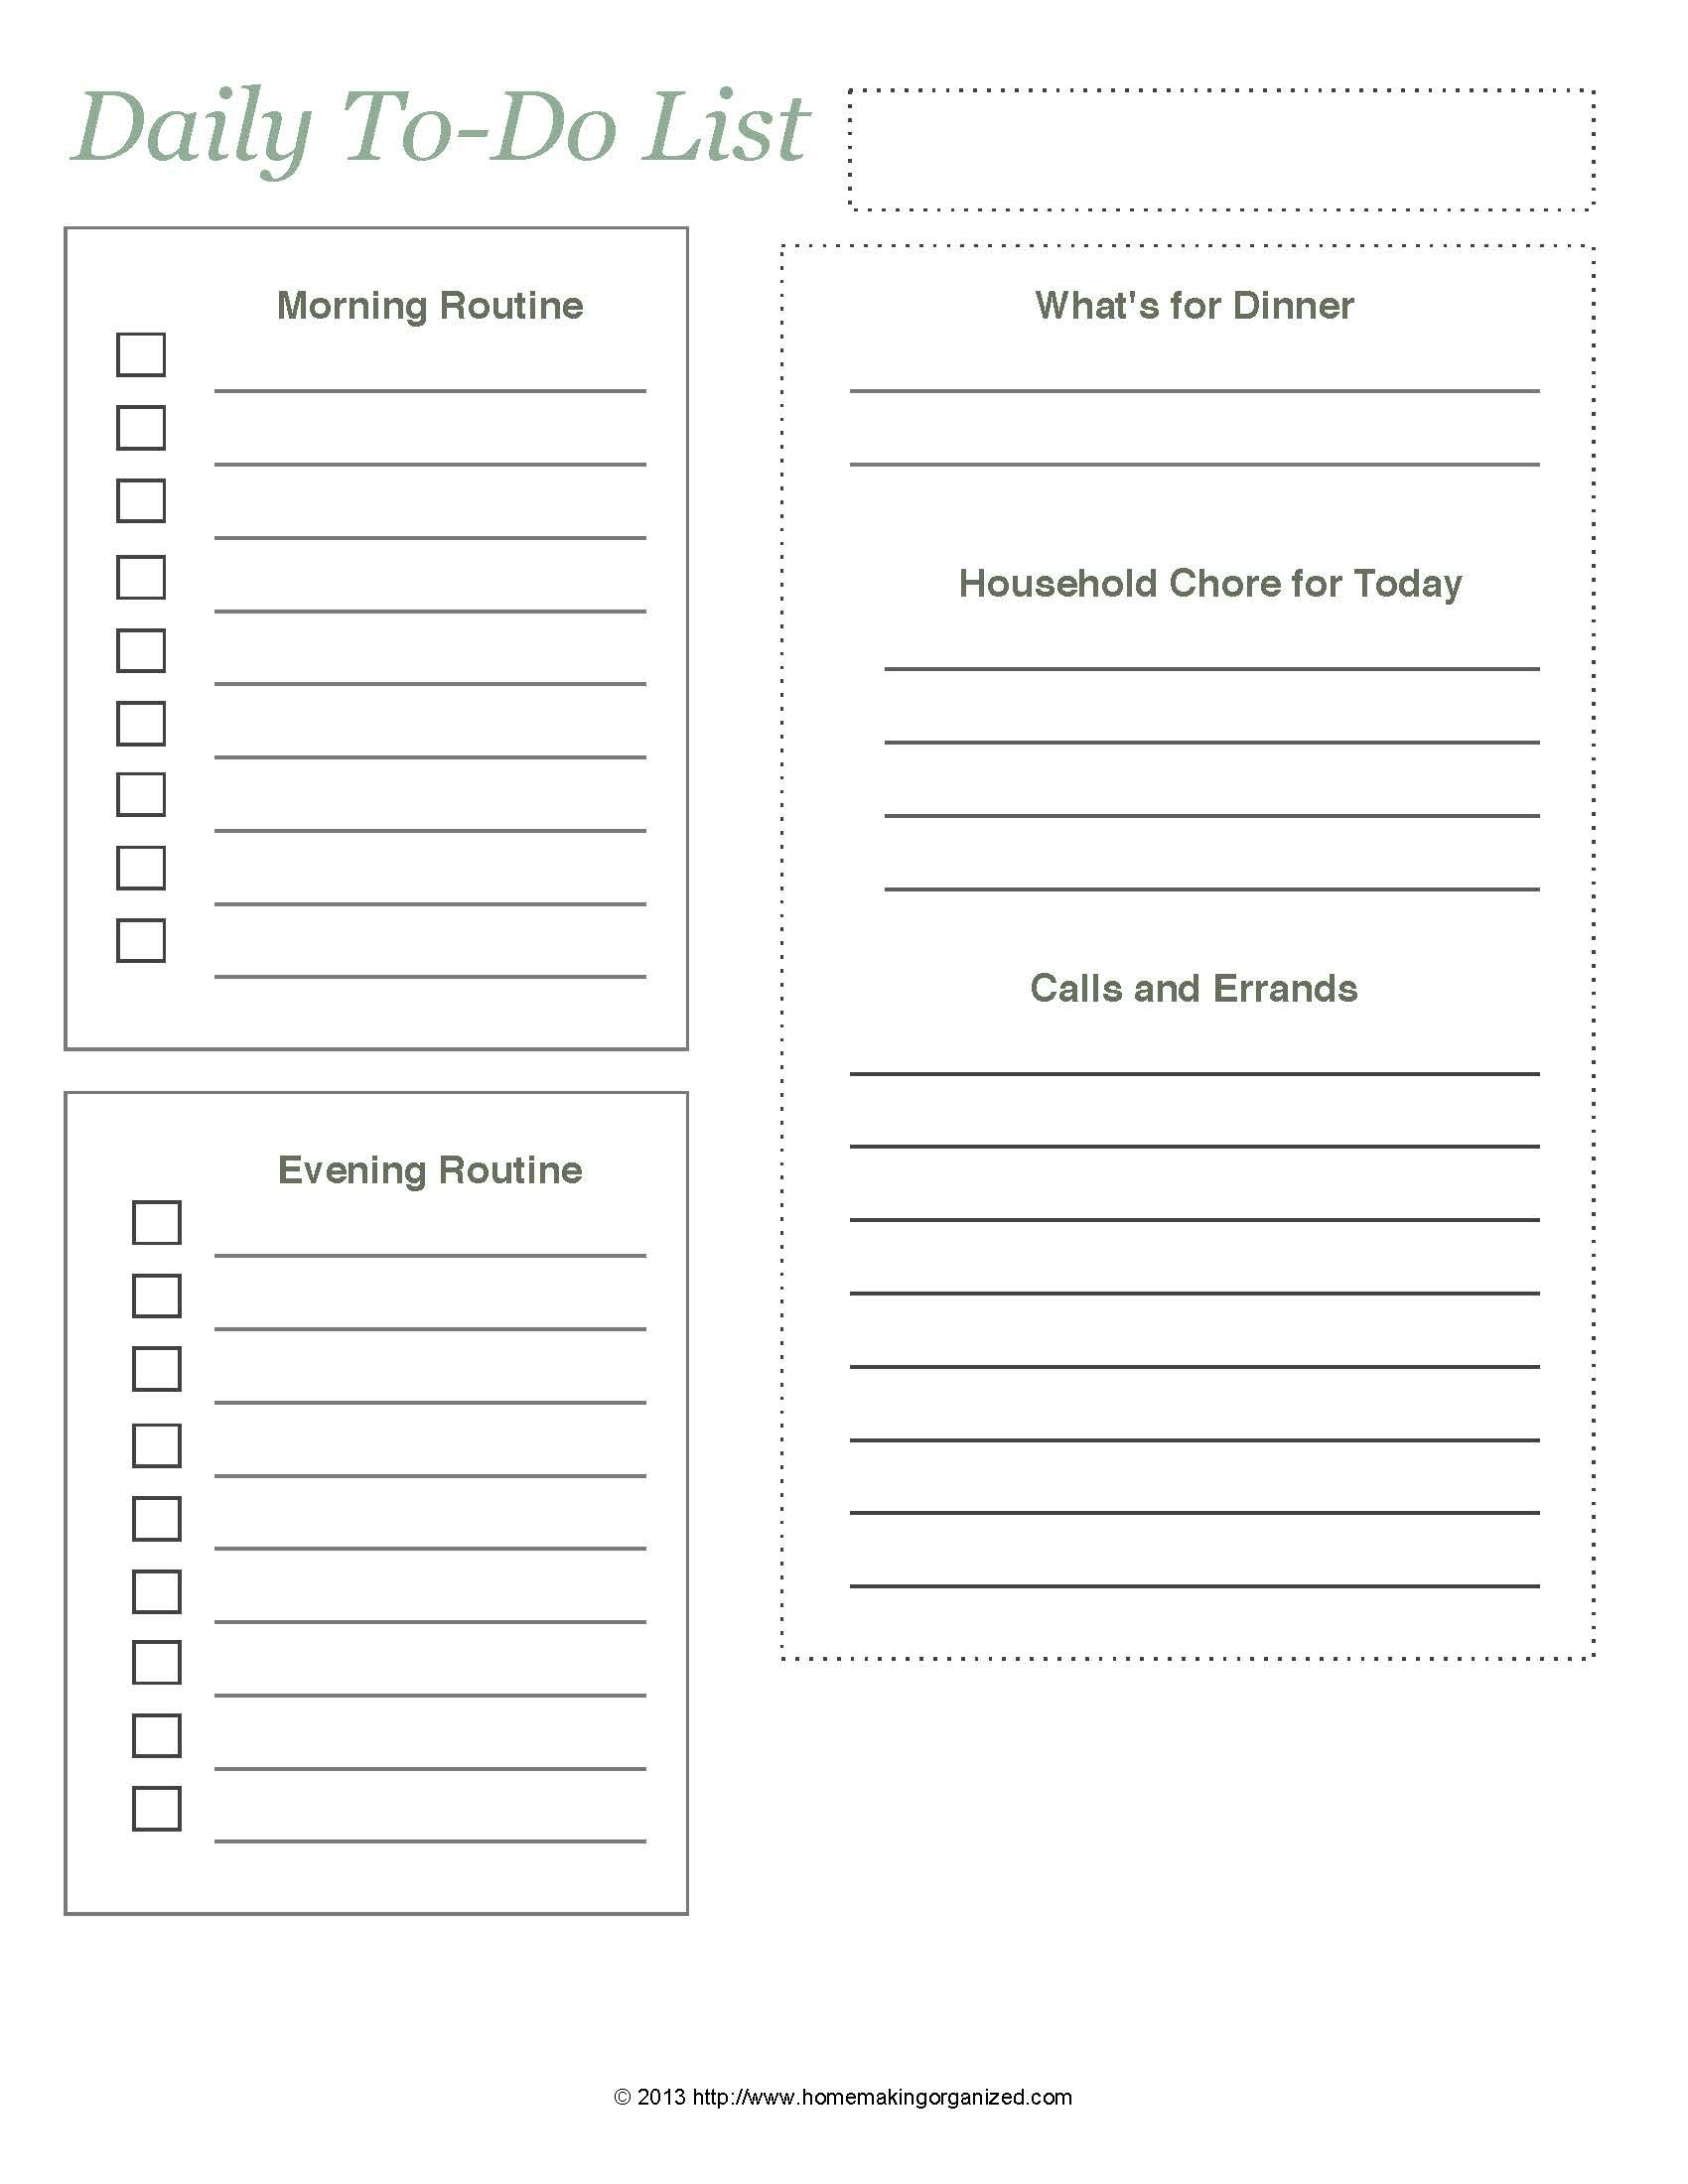 Daily To-Do List {Free Printable} - Homemaking Organized